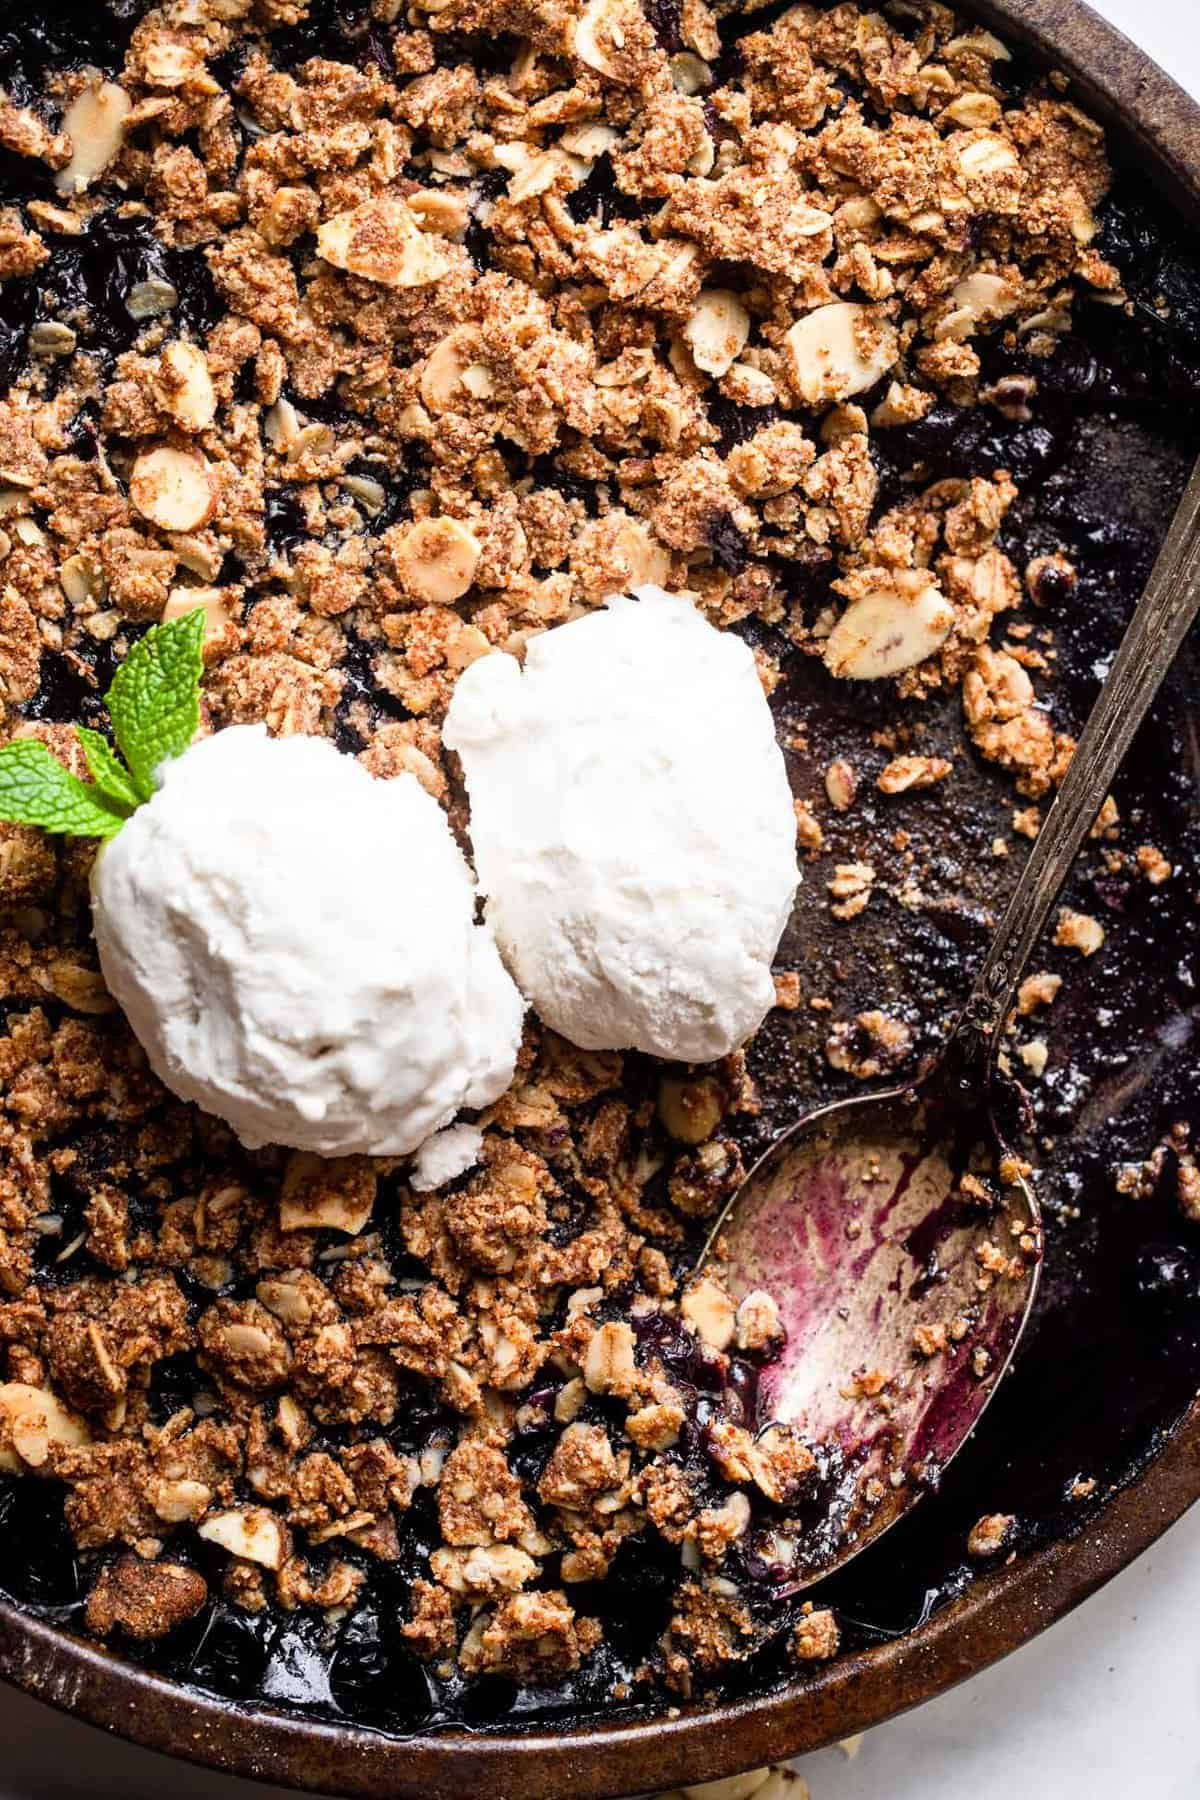 Gluten Free Blueberry Crisp with ice cream on top and a spoon